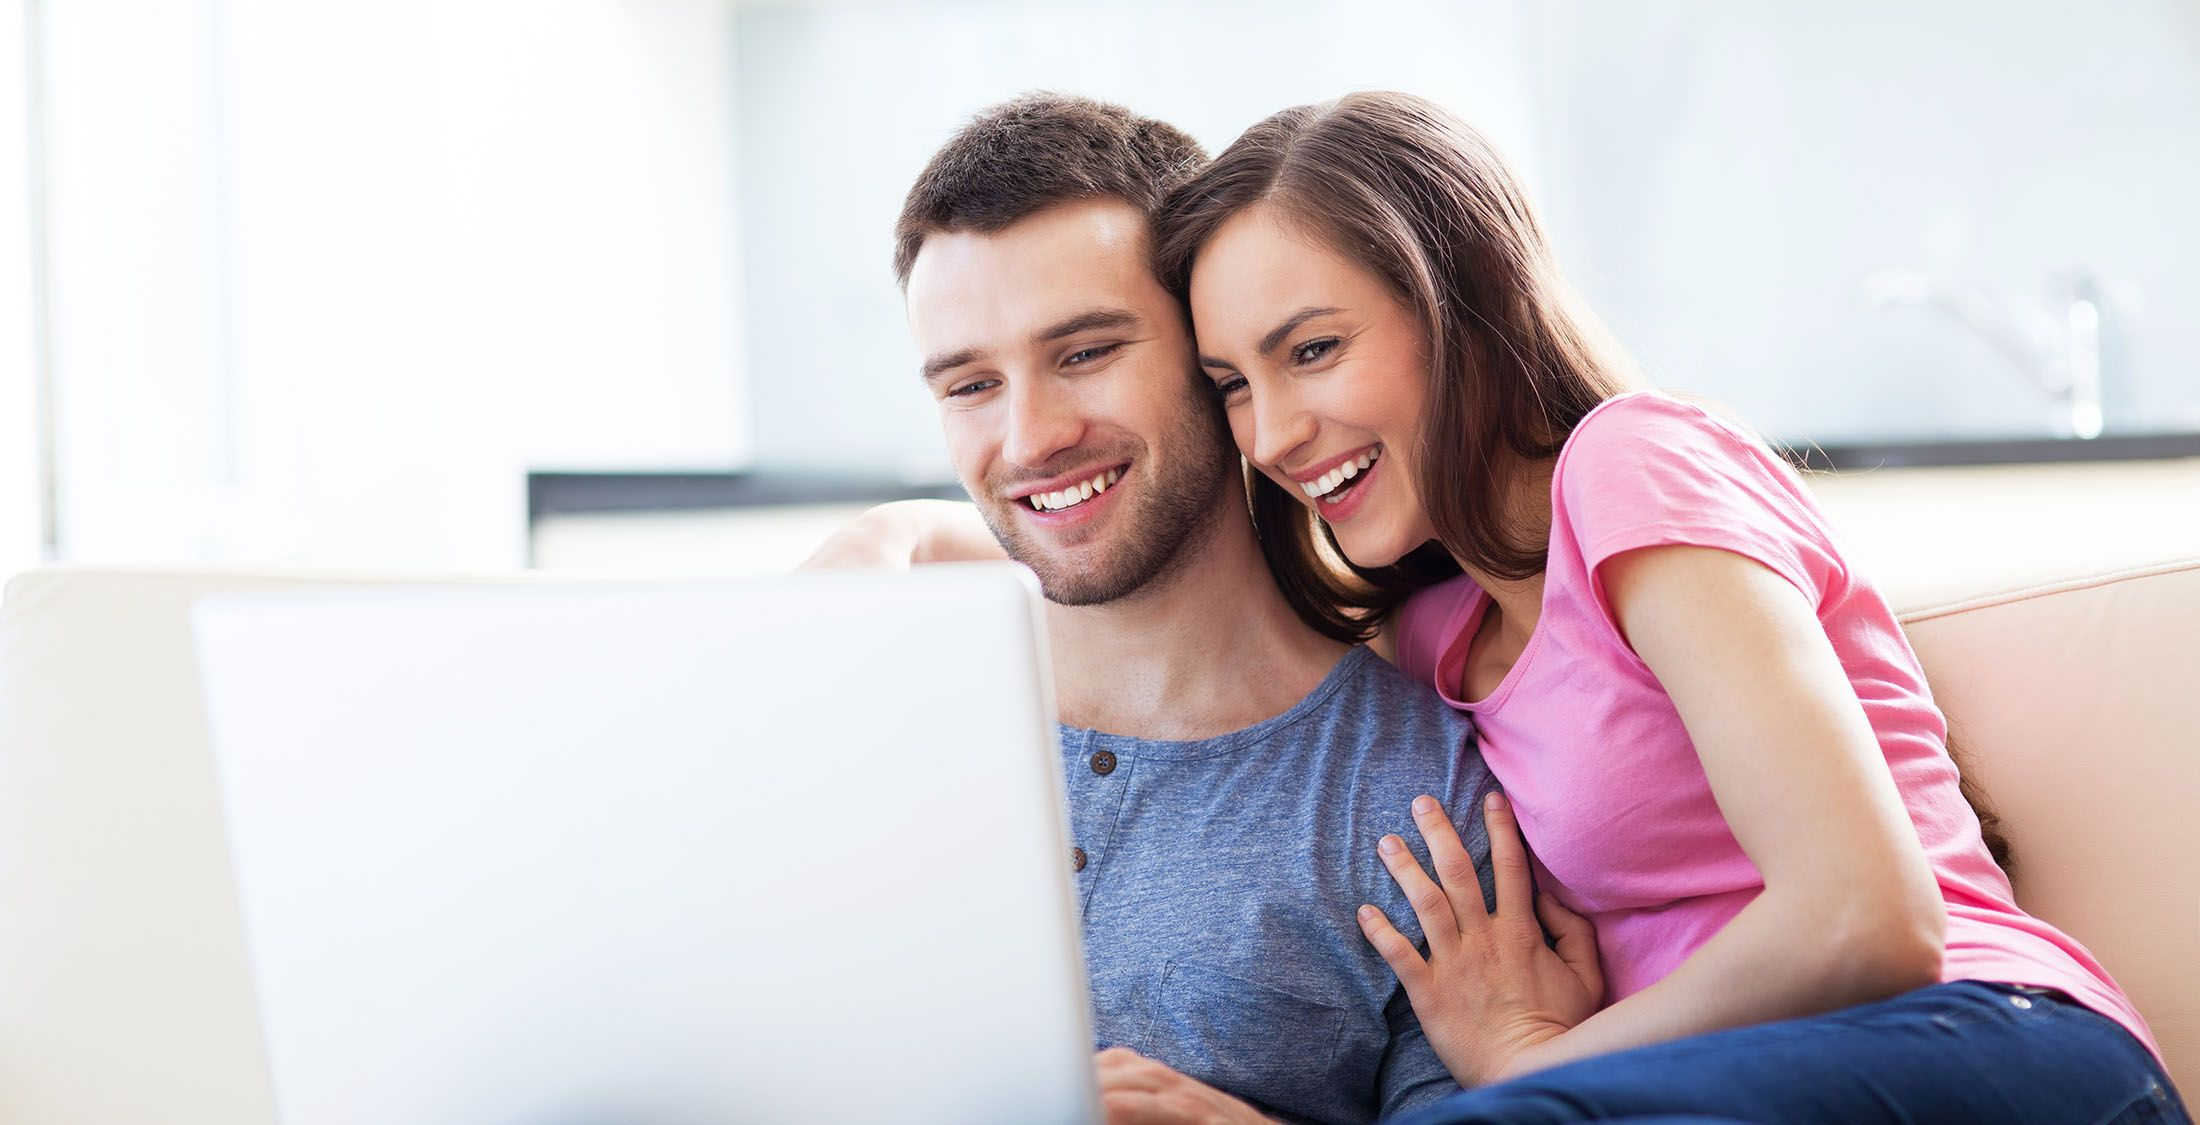 couple sitting on couch looking at computer